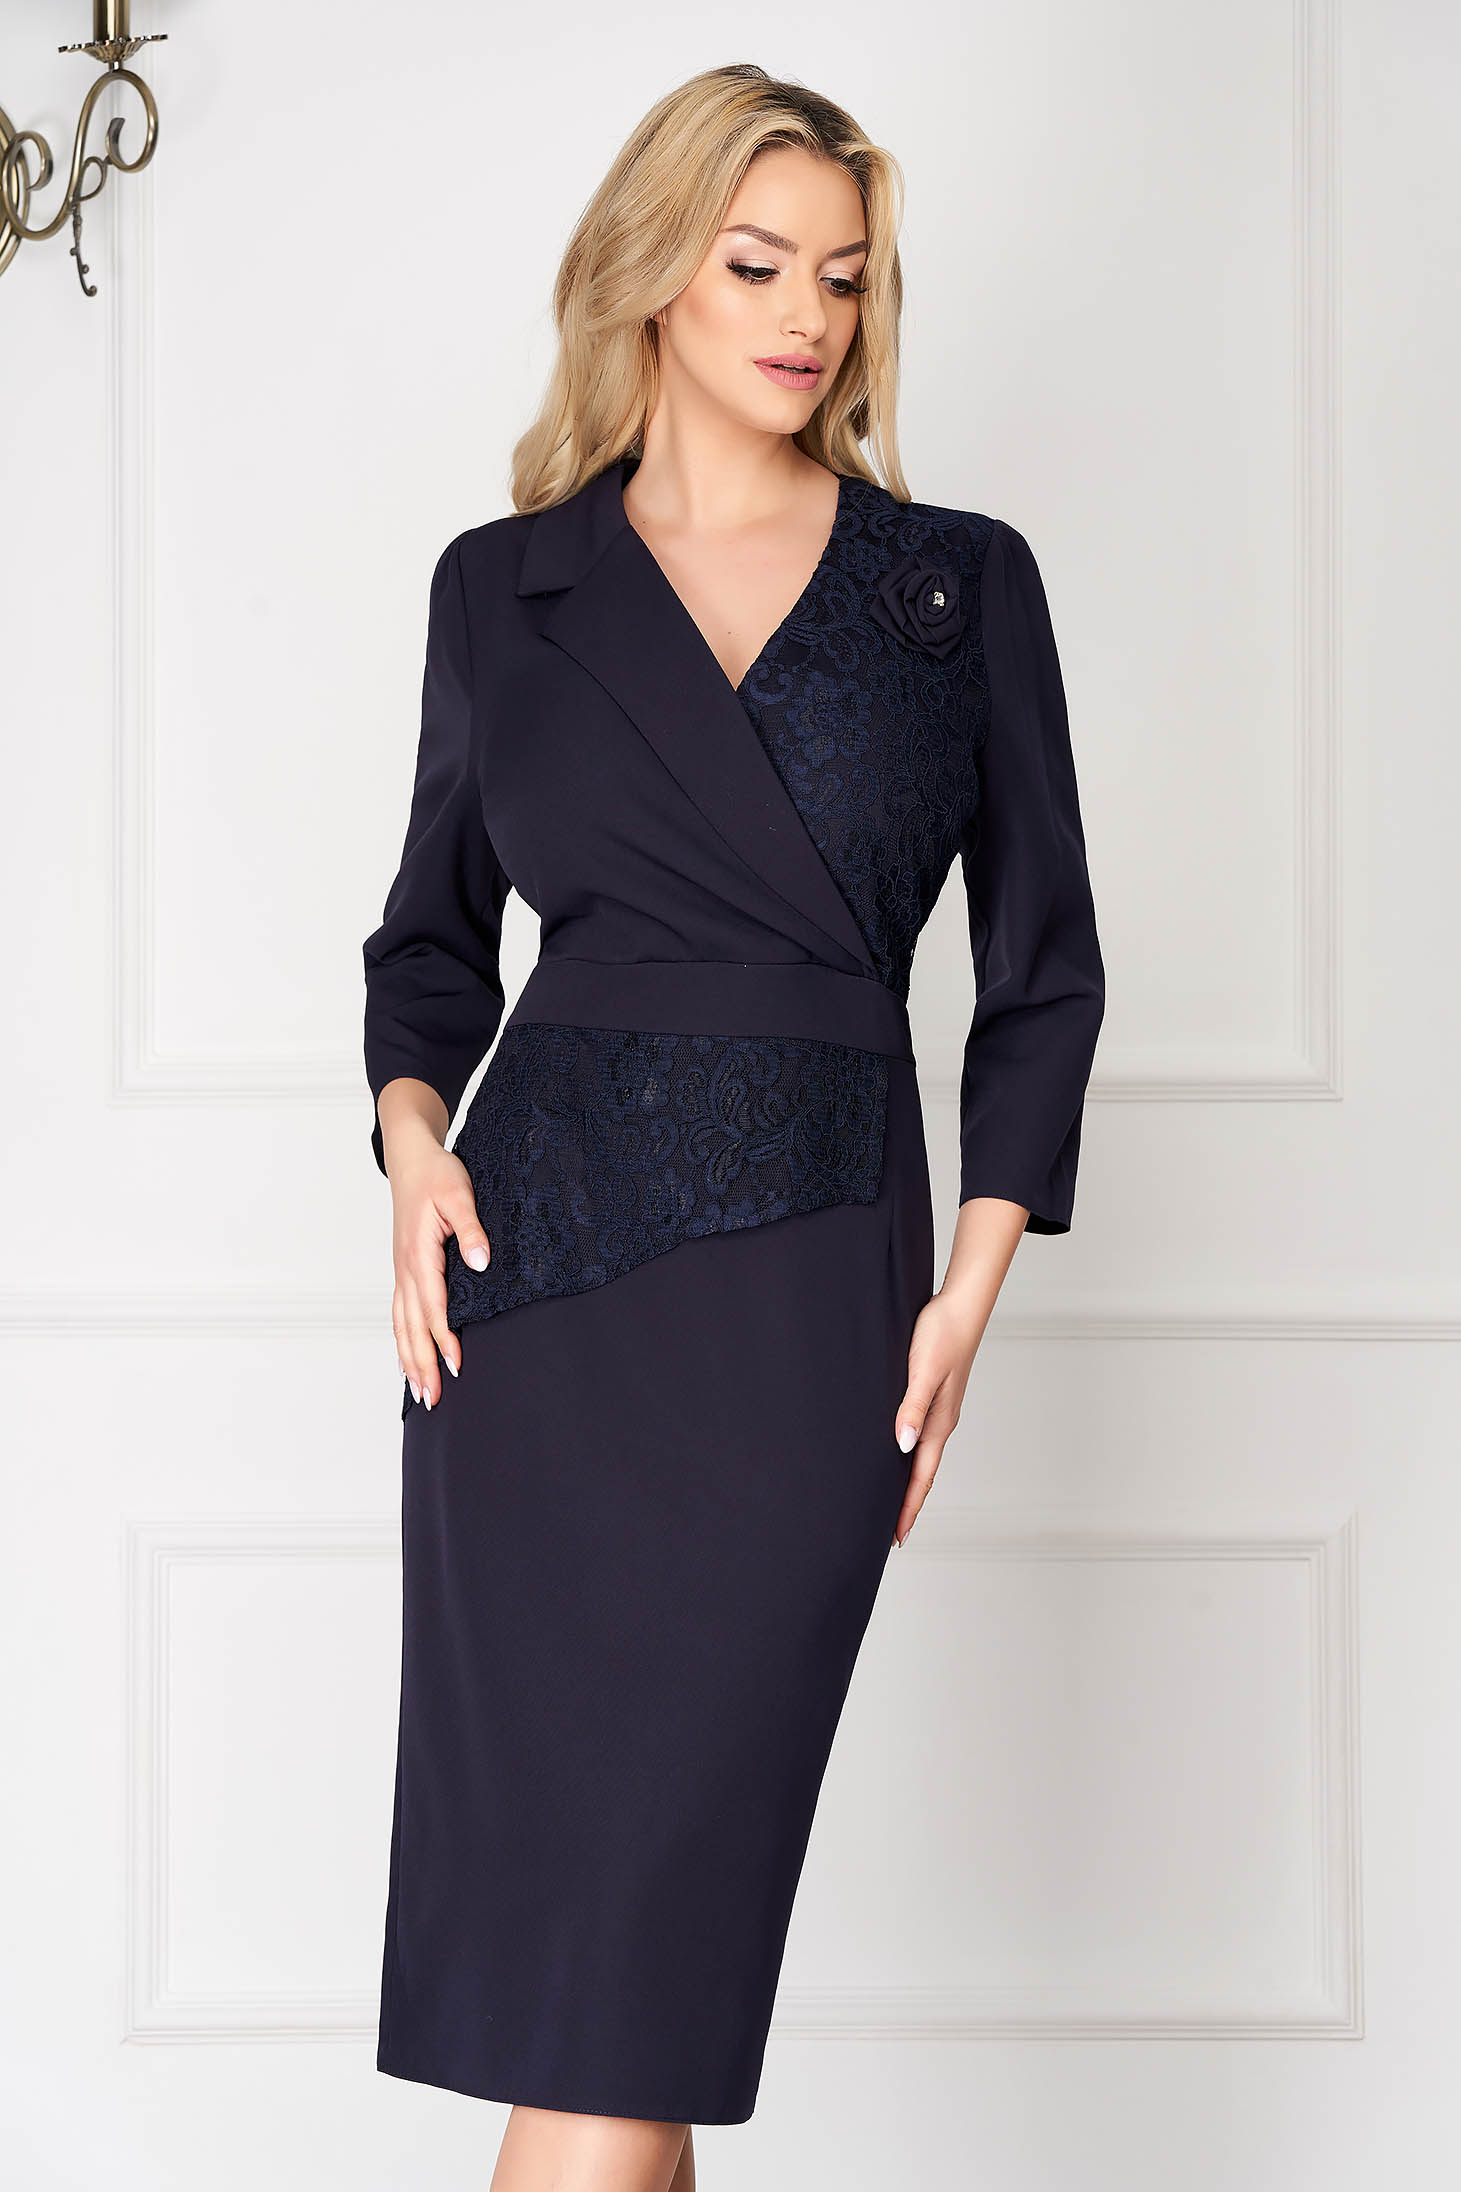 Darkblue office midi pencil dress with lace details wrap over front